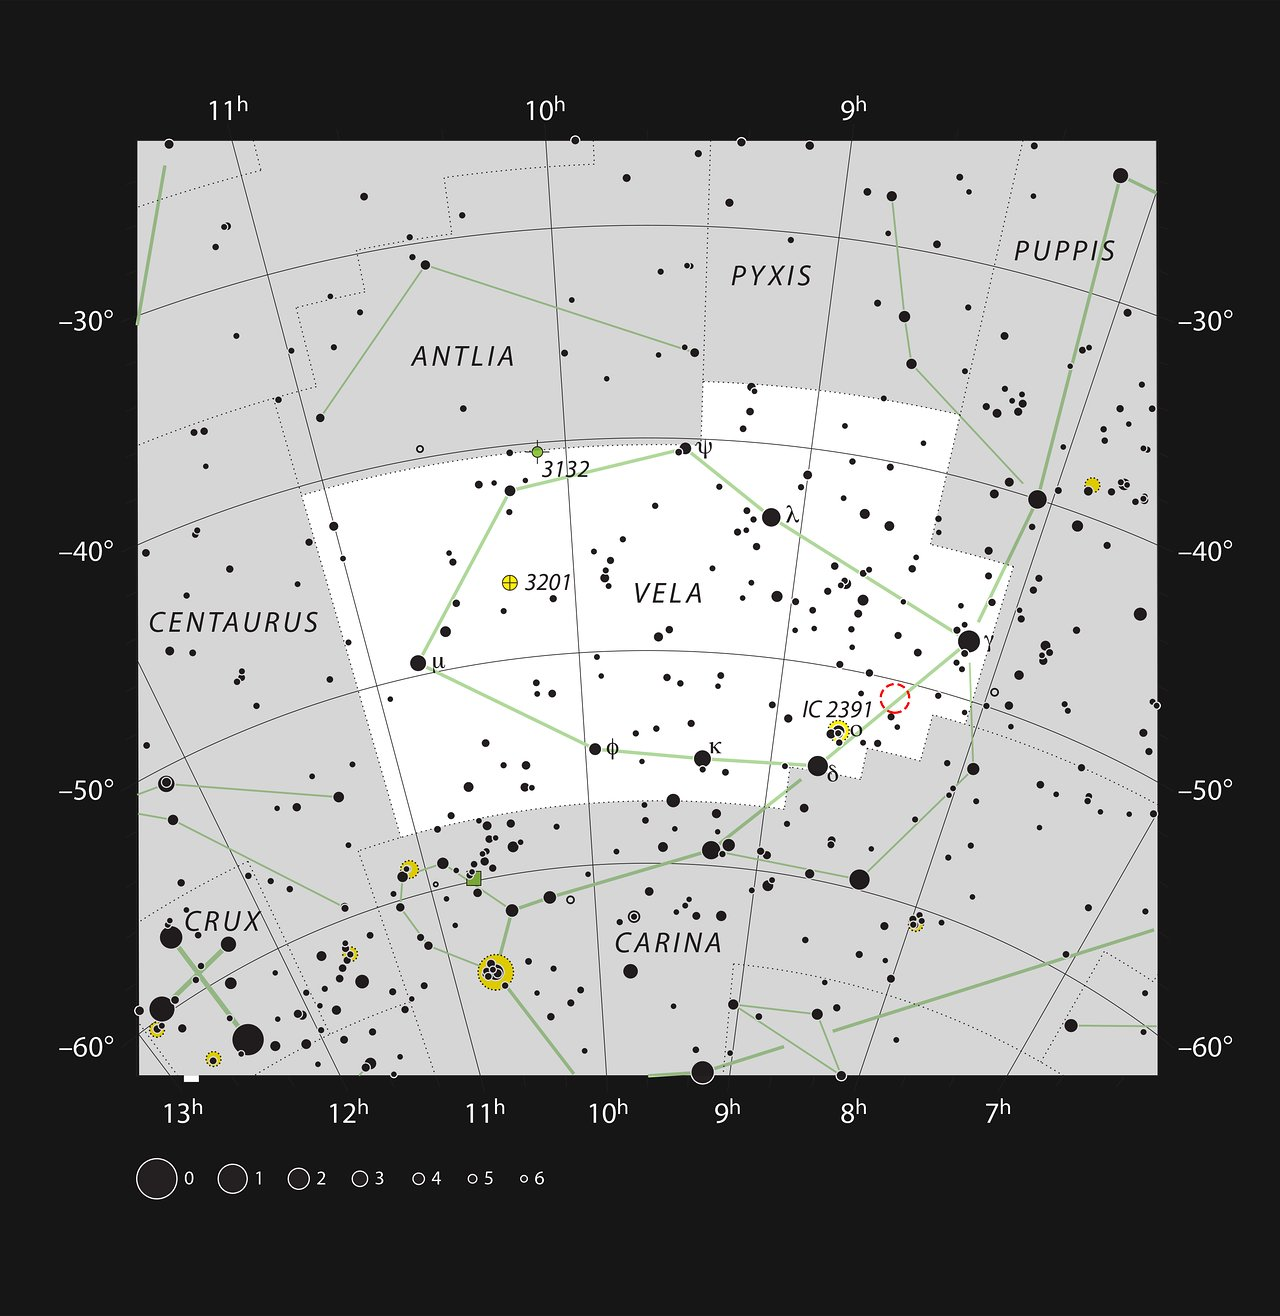 The Herbig-Haro object HH 46/47 in the constellation of Vela